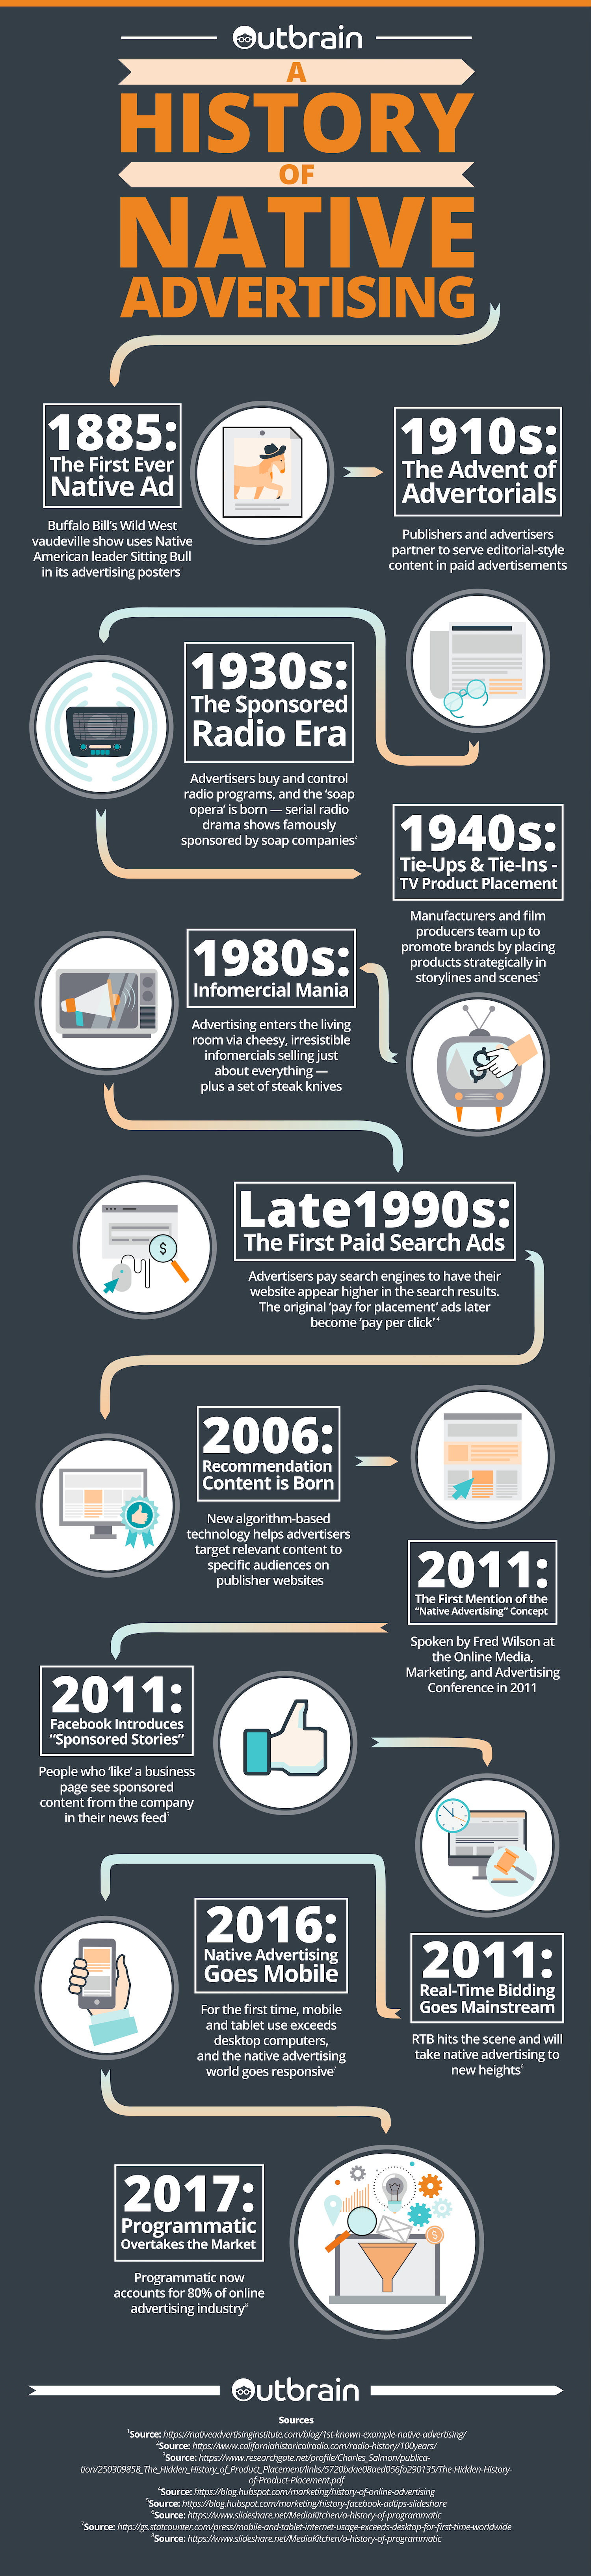 Native Advertising history Infographic